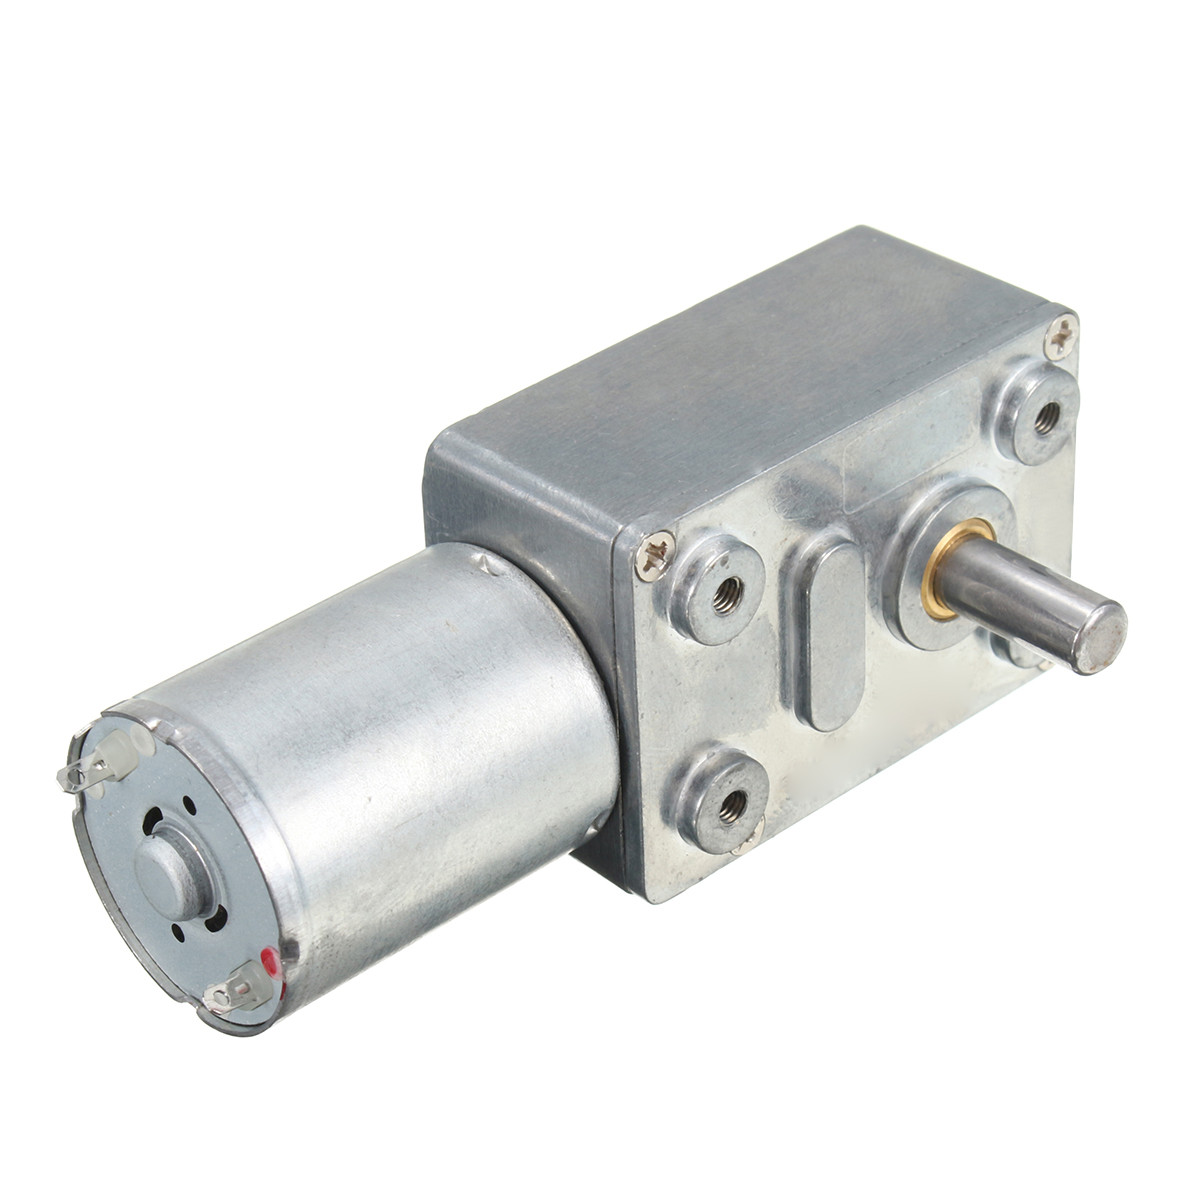 DC 12V 0.6RPM Low Speed High Torque Turbo Worm Geared Motor 370 Right Angle Gear